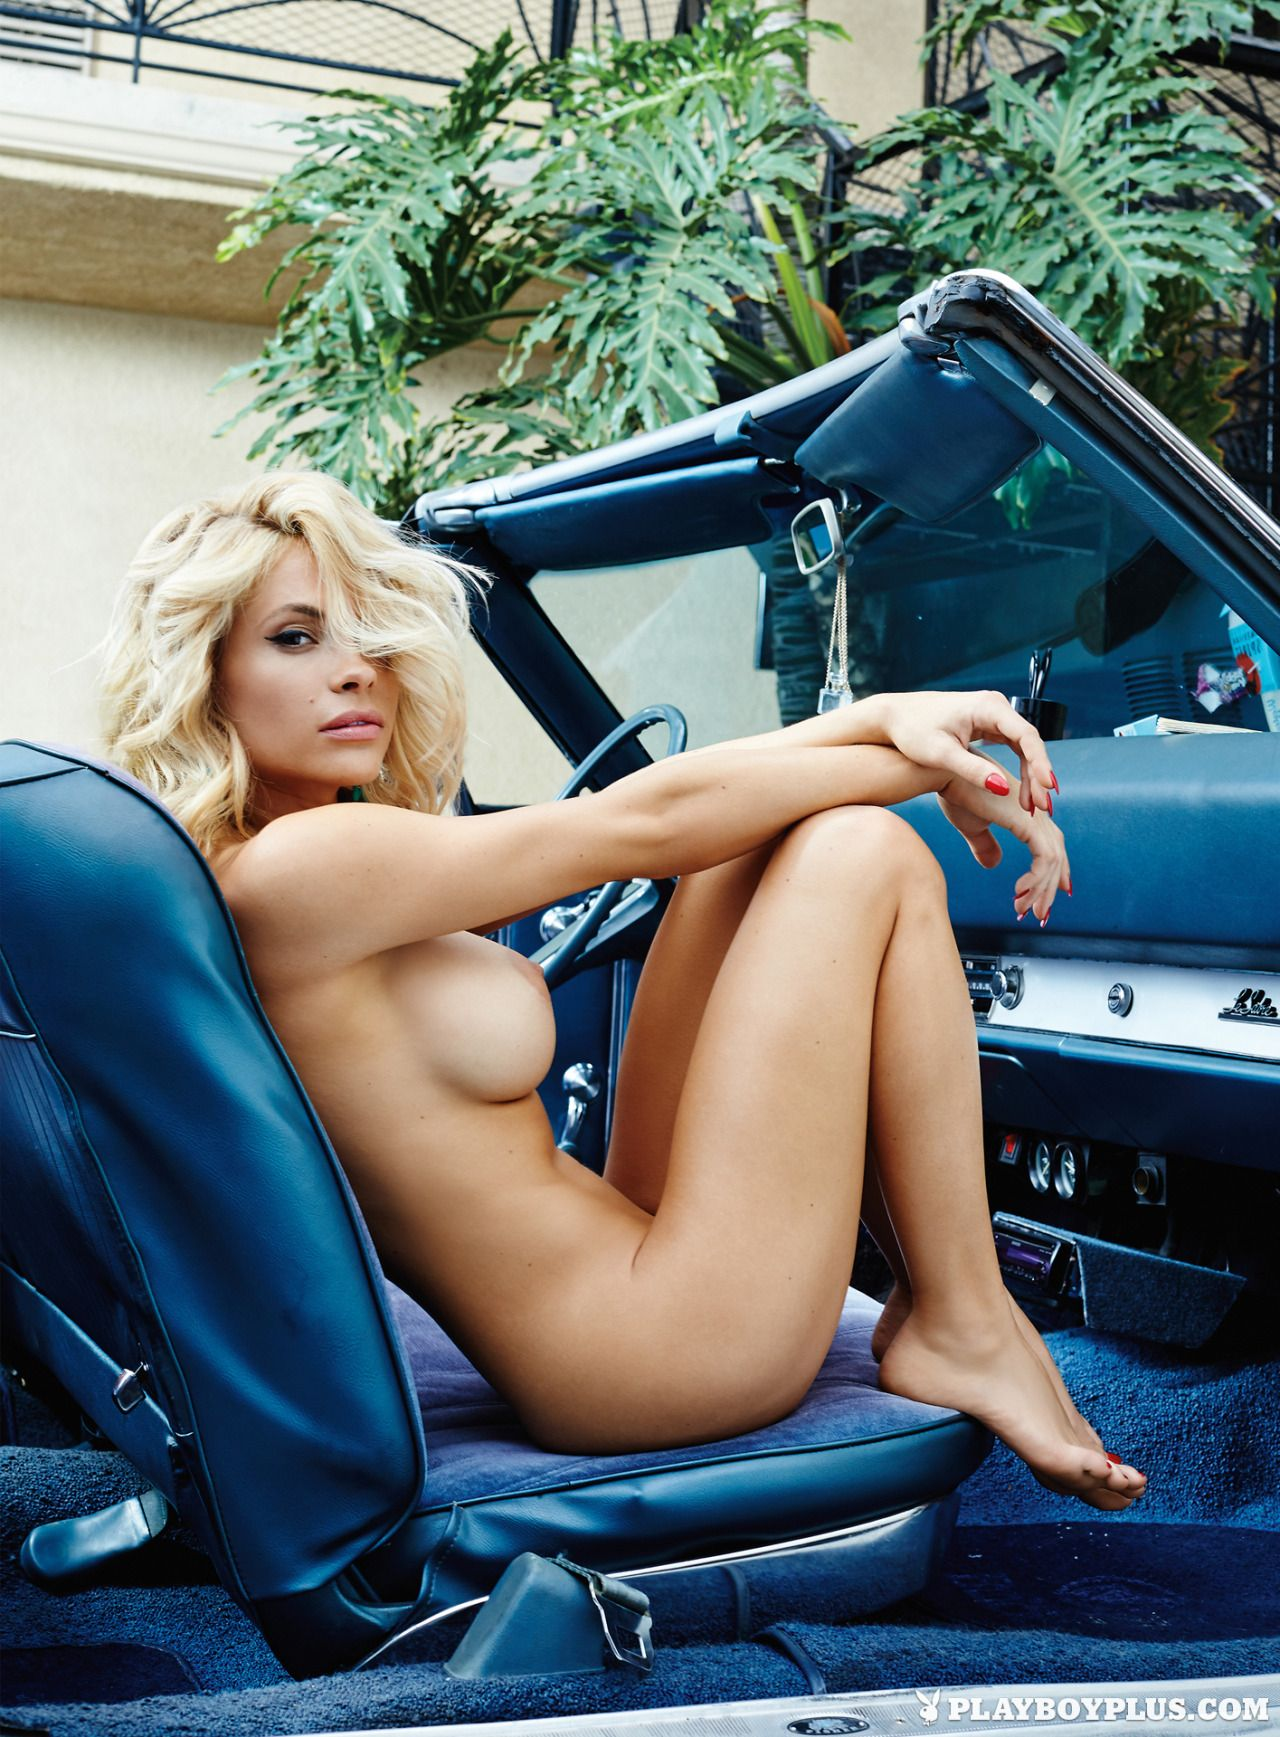 Remarkable, and porn girls cars naked real rather grateful for